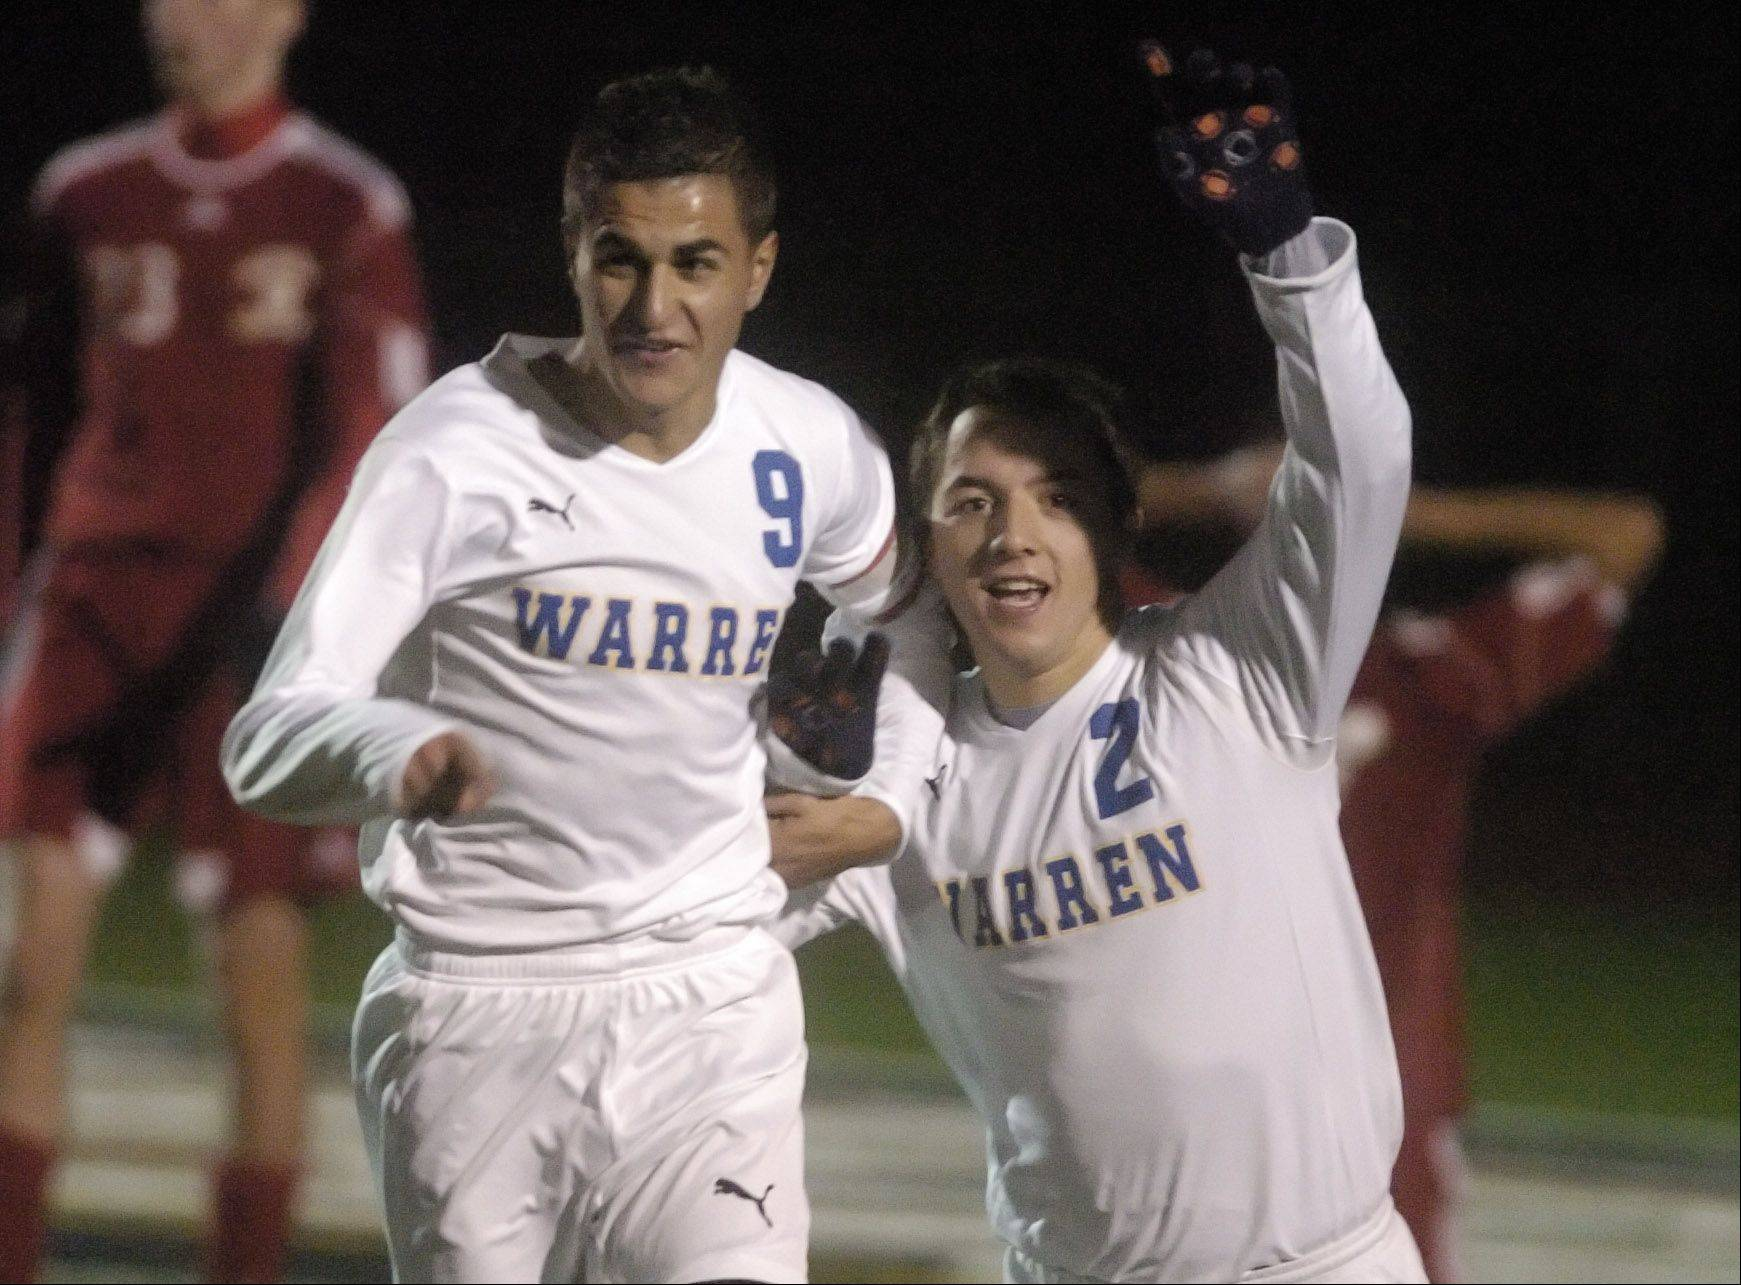 Daniel Szczepanek, left, and Tony Severini of Warren celebrate after a goal during the Blue Devils� championship effort against Naperville Central on Saturday night at Lincoln-Way North.